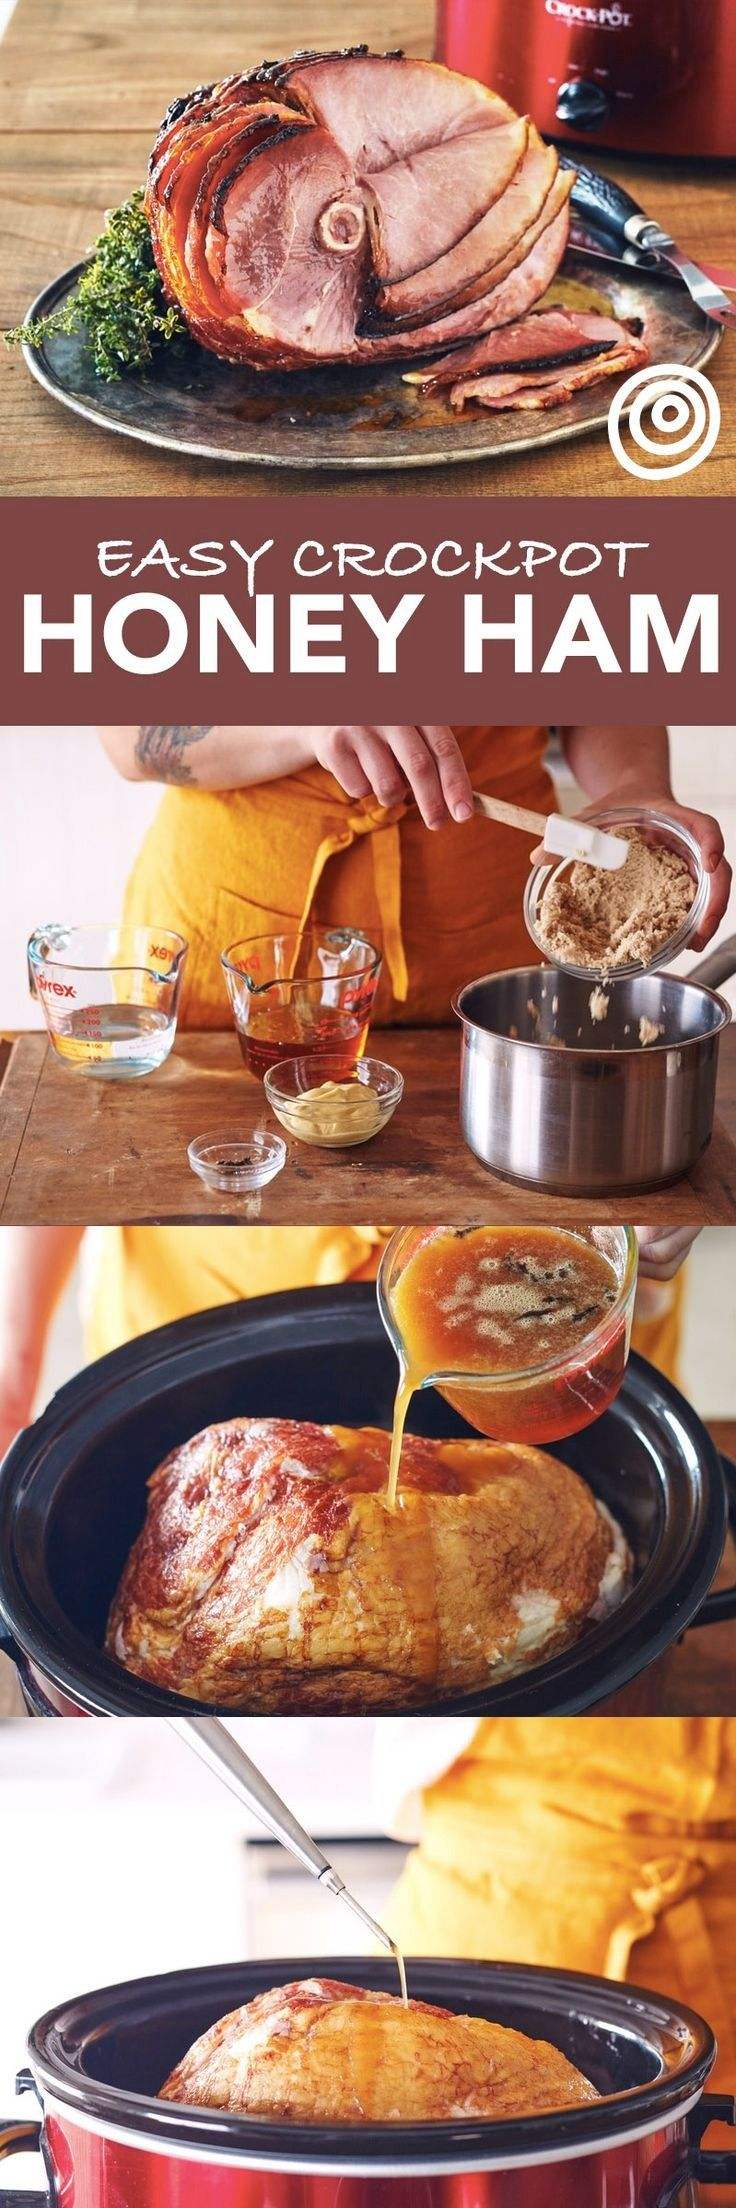 how to make turkey ham in the oven